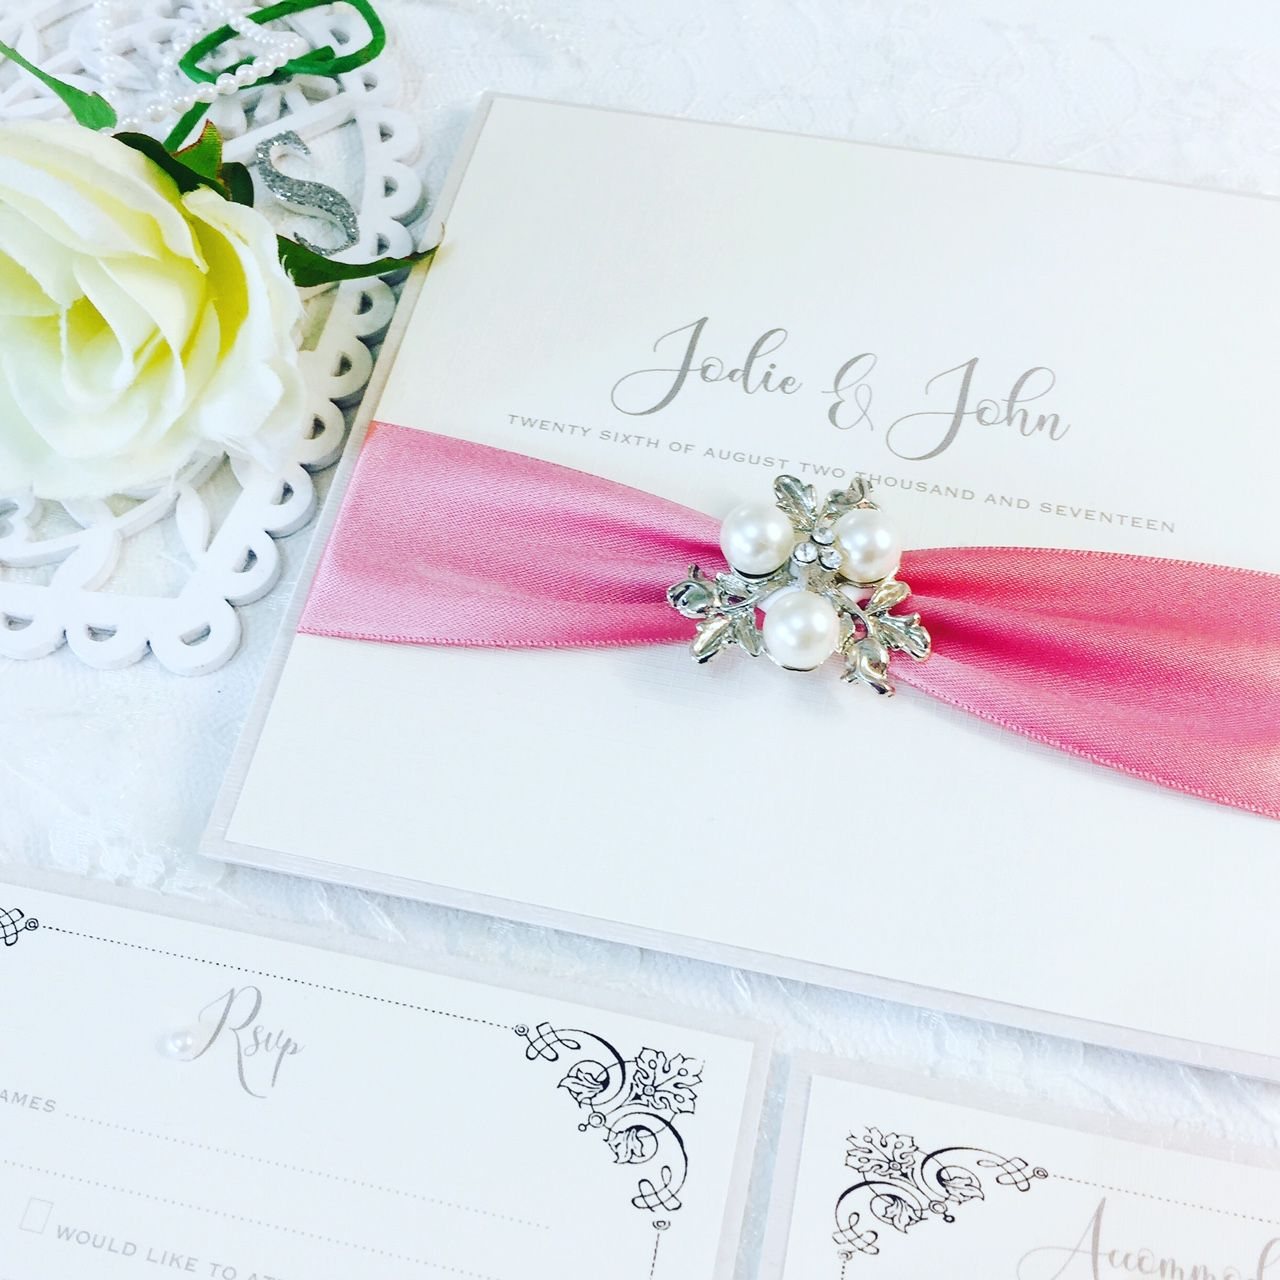 Sofia - Elegant boxed invitation with beautiful brooch